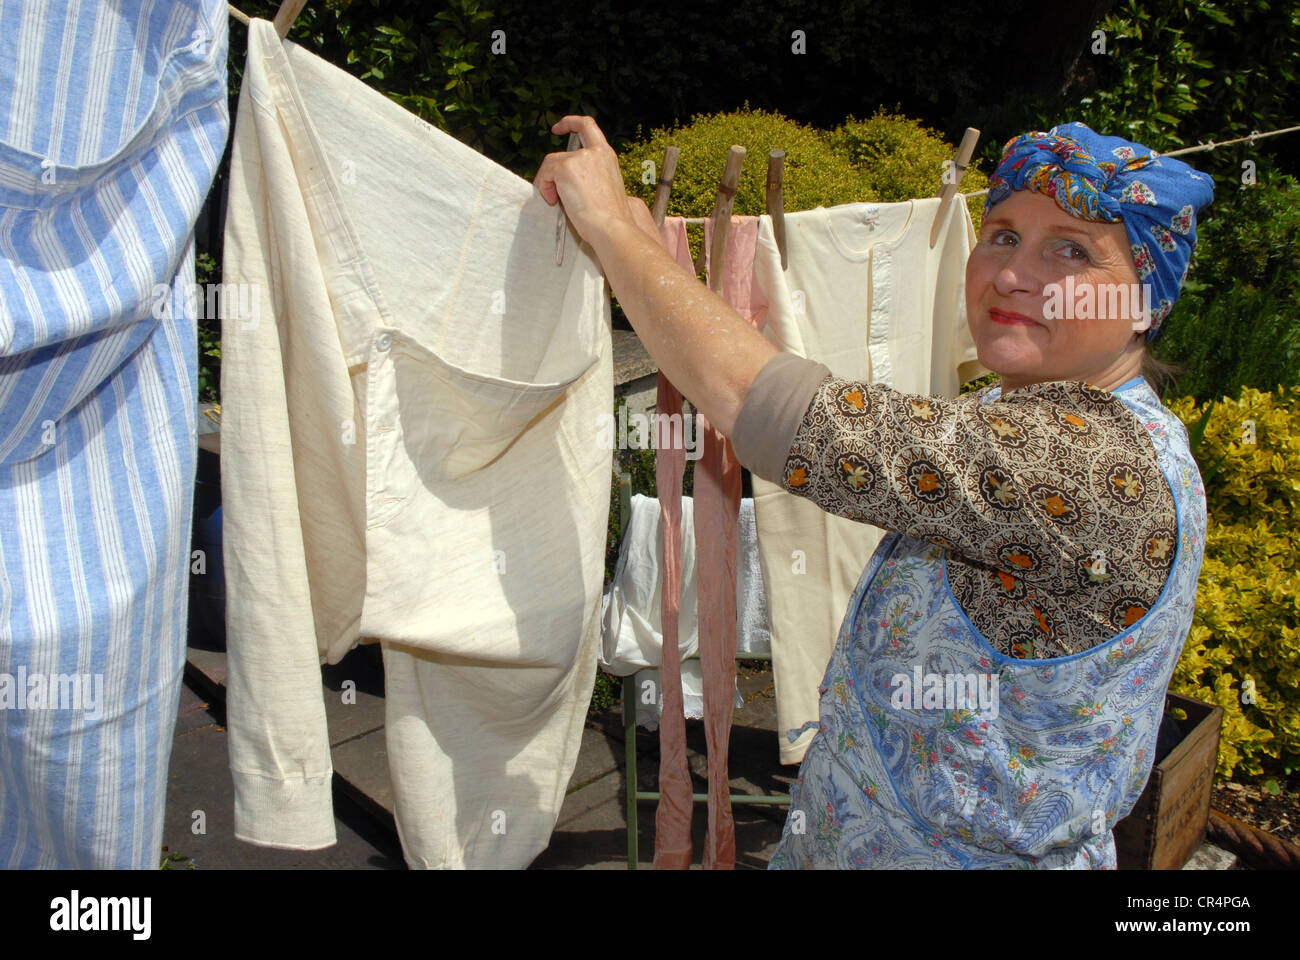 washer-woman-dressed-in-1940s-attire-at-a-world-war-2-renactment-event-CR4PGA.jpg